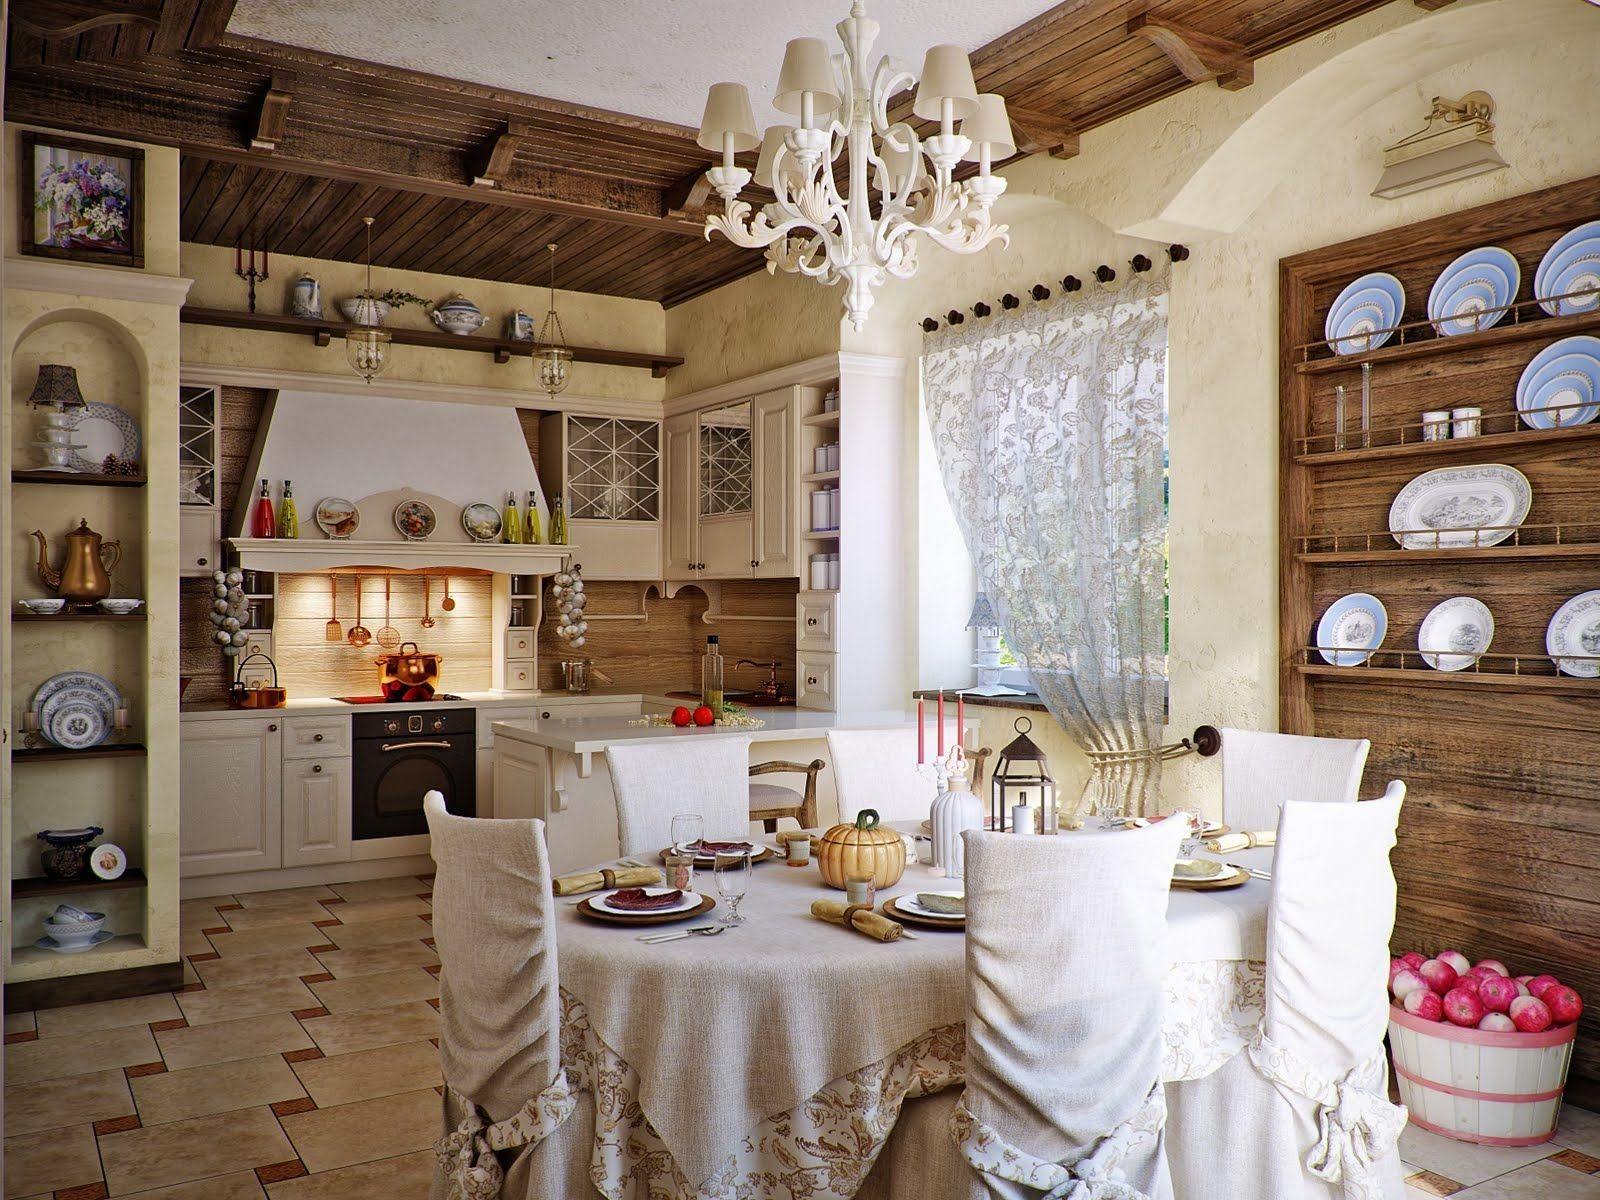 Spanish Style Kitchen Designs With Dinning Table Set And Unique - Achieve french country style